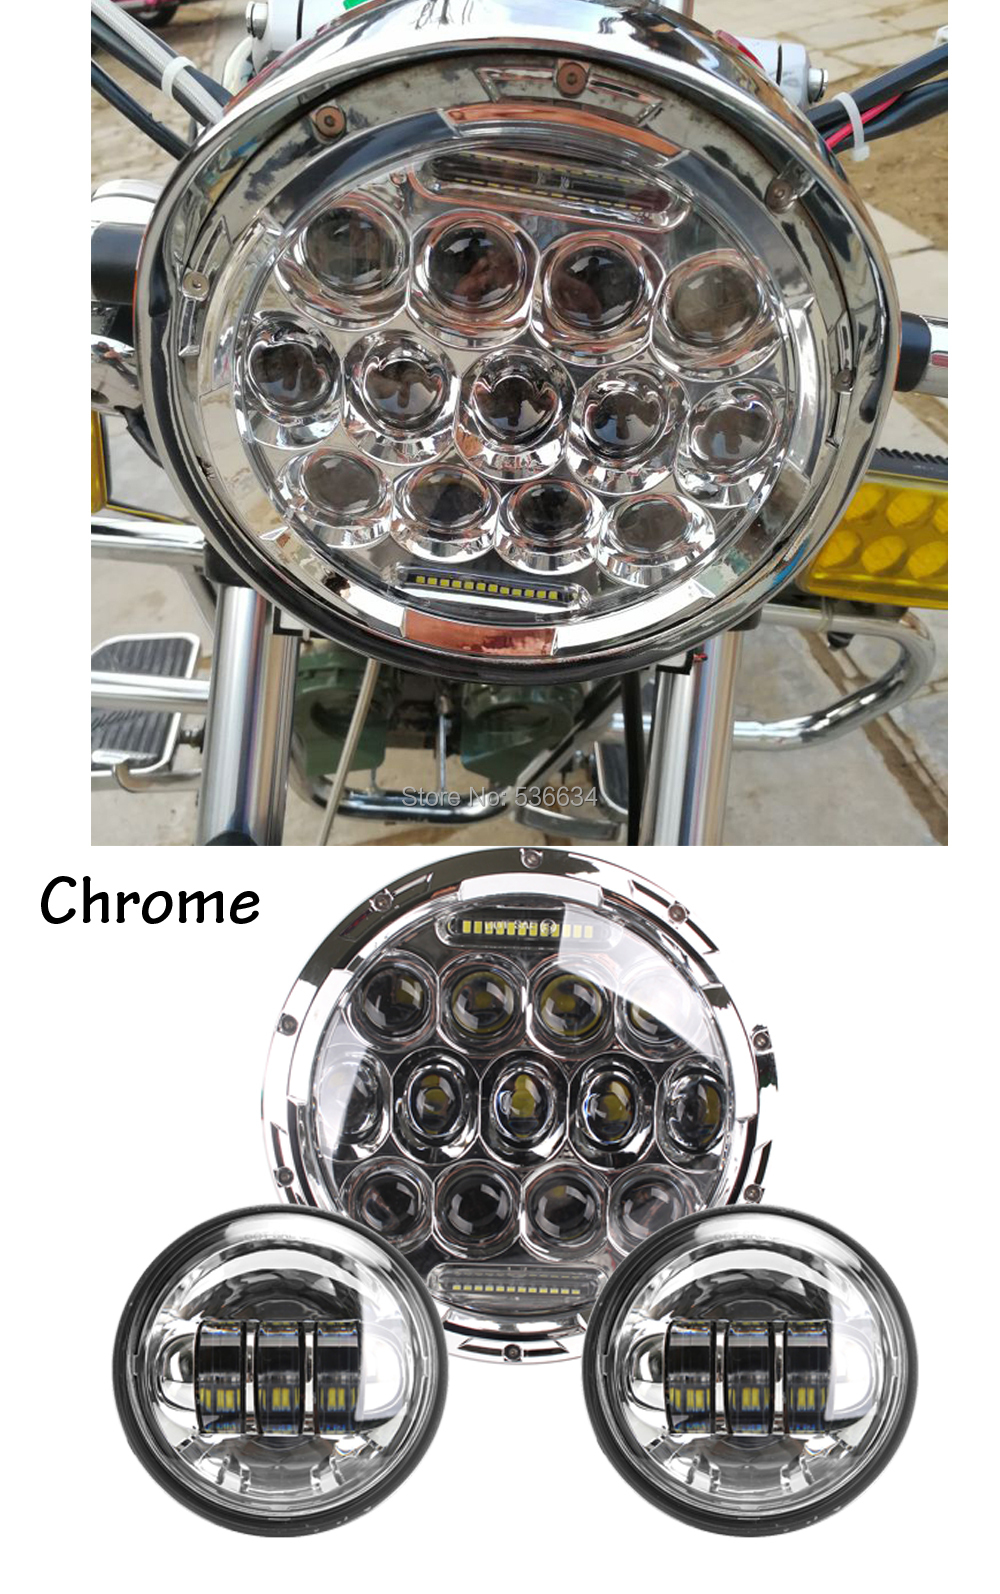 7Inch LED Projector Headlight with Matching 4.5Inch LED Passing Lamps Fog Light For Harley Davidson Heritage Softail